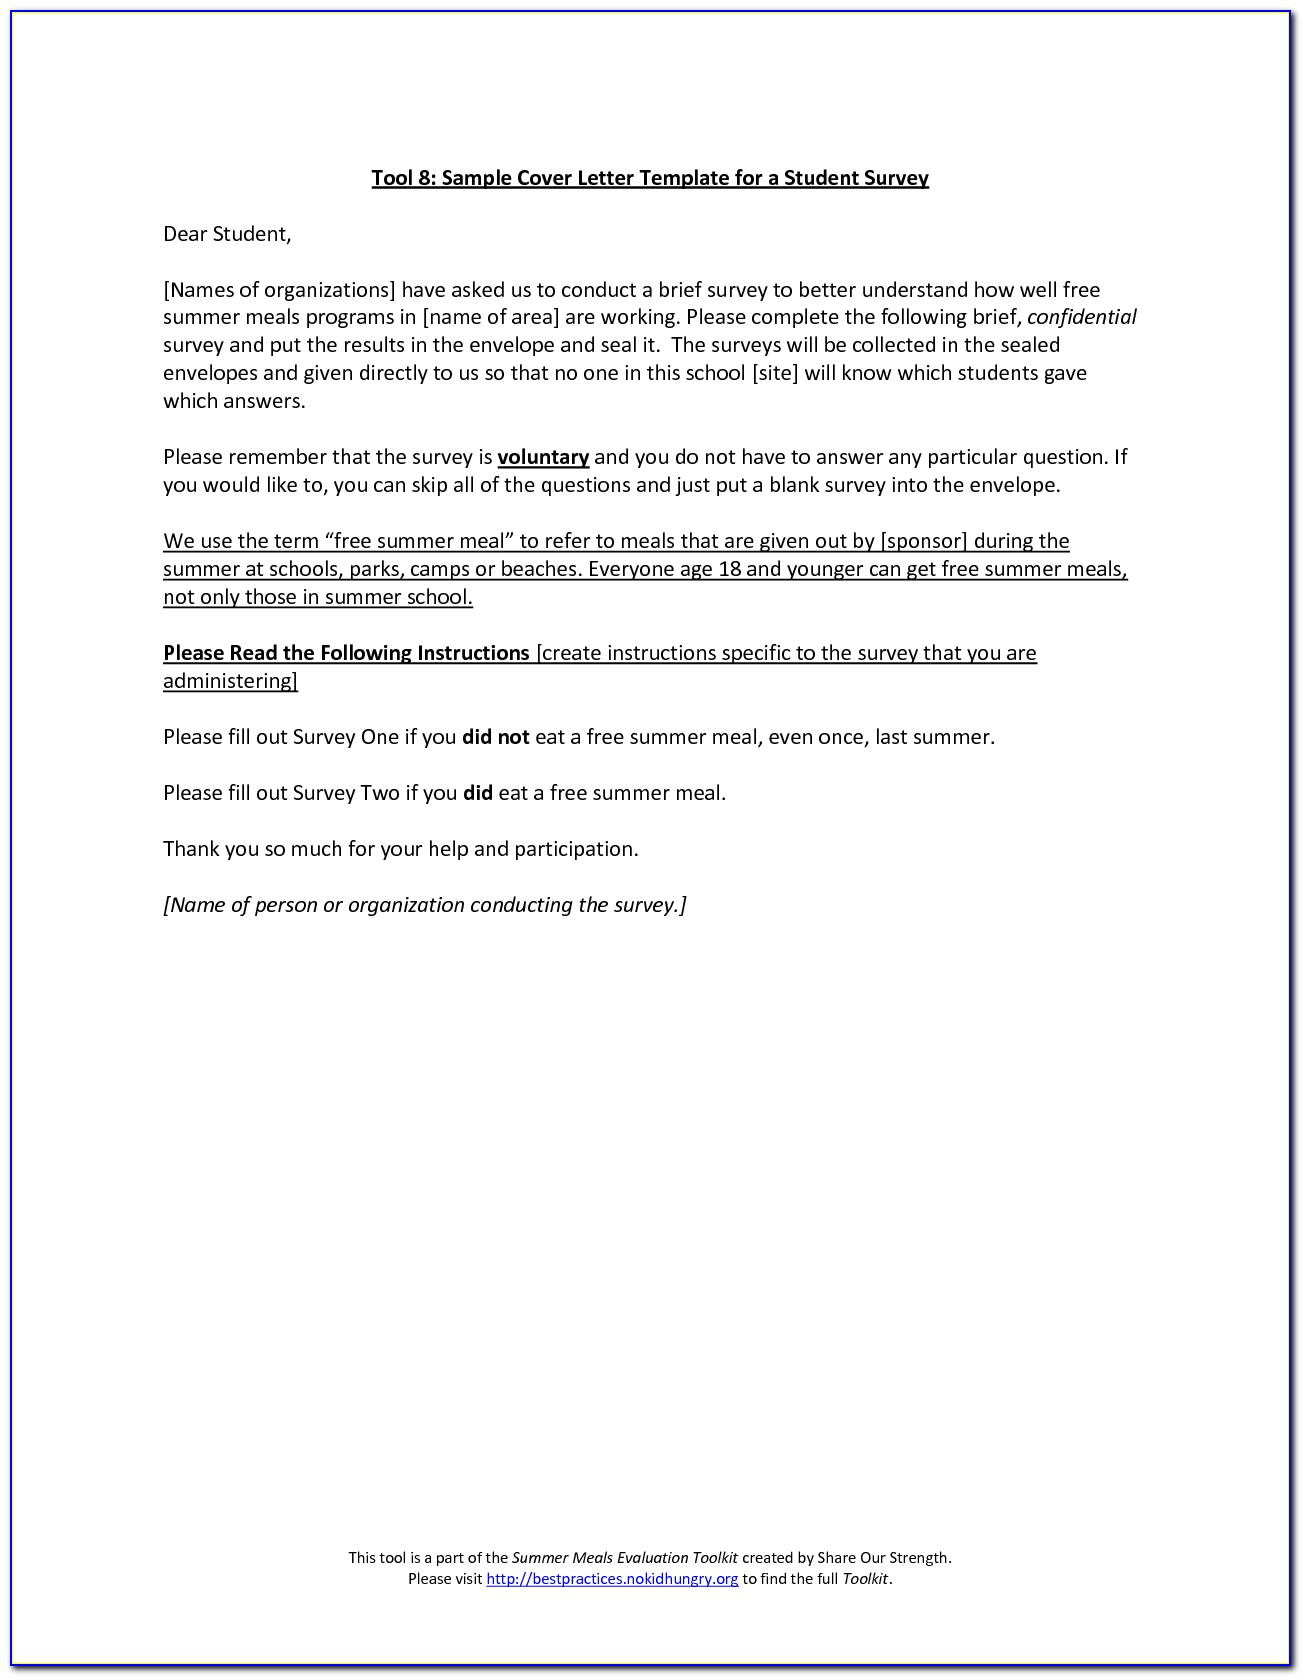 Customer Satisfaction Survey Cover Letter Template